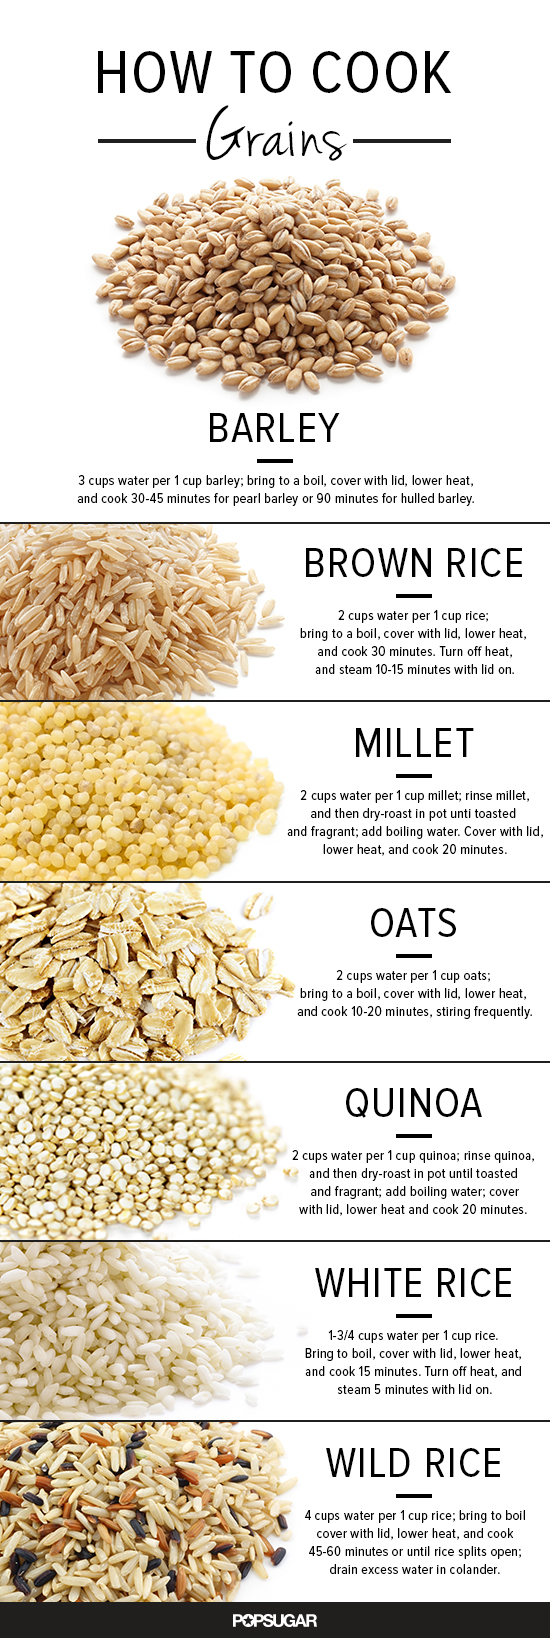 How to cook grains popsugar food - Six alternative uses of rice at home ...